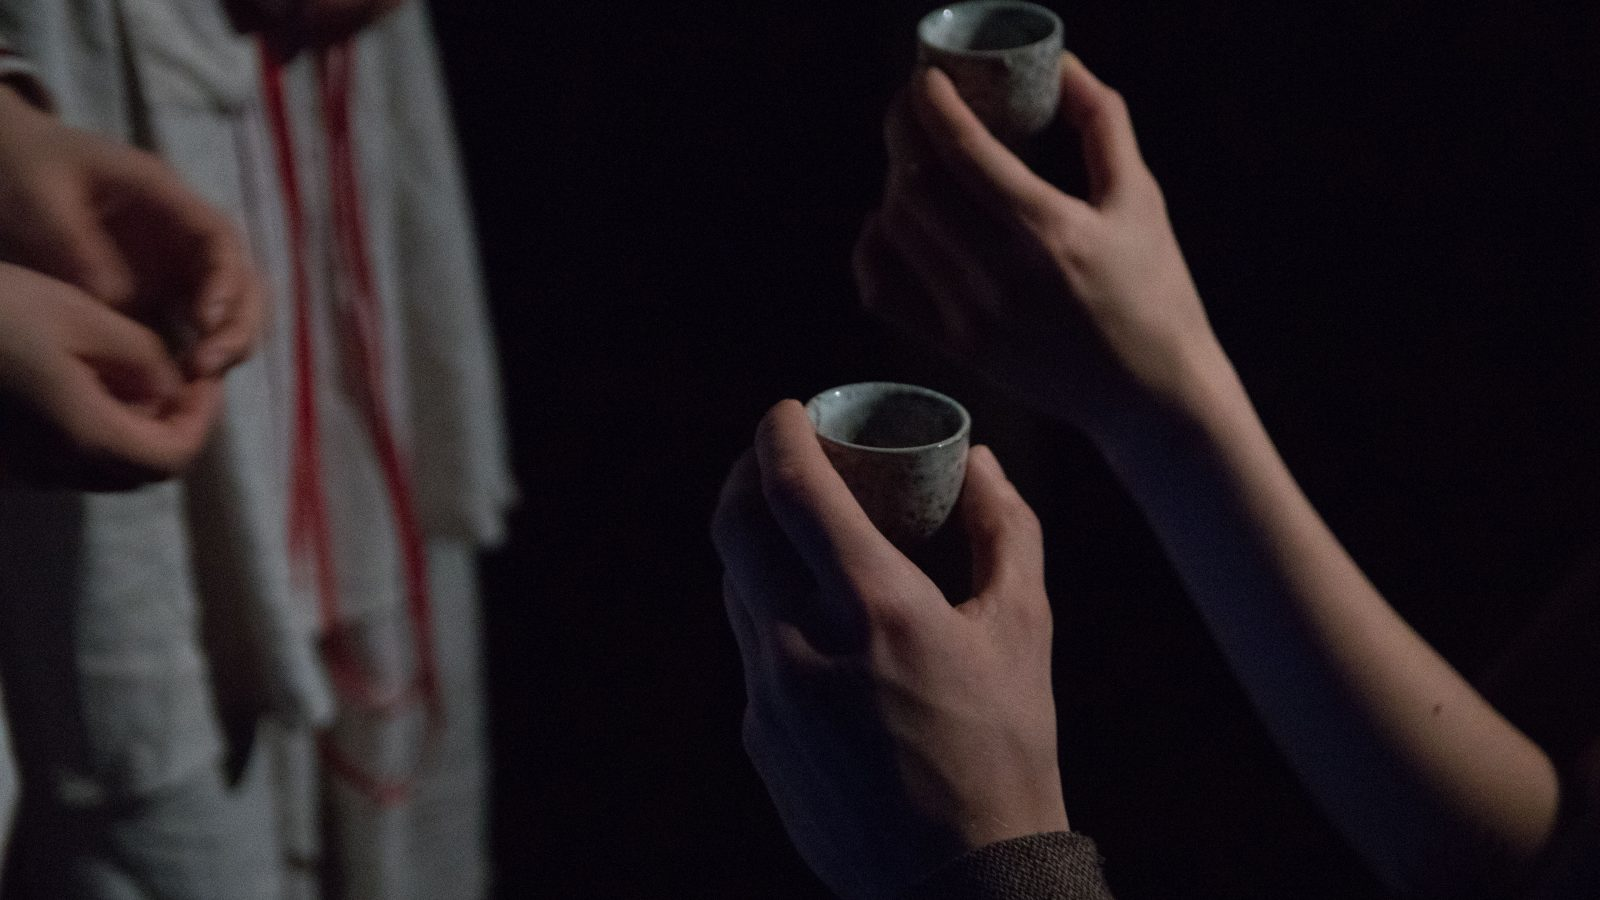 Two hands hold small clay cups upwards towards two unseen women.